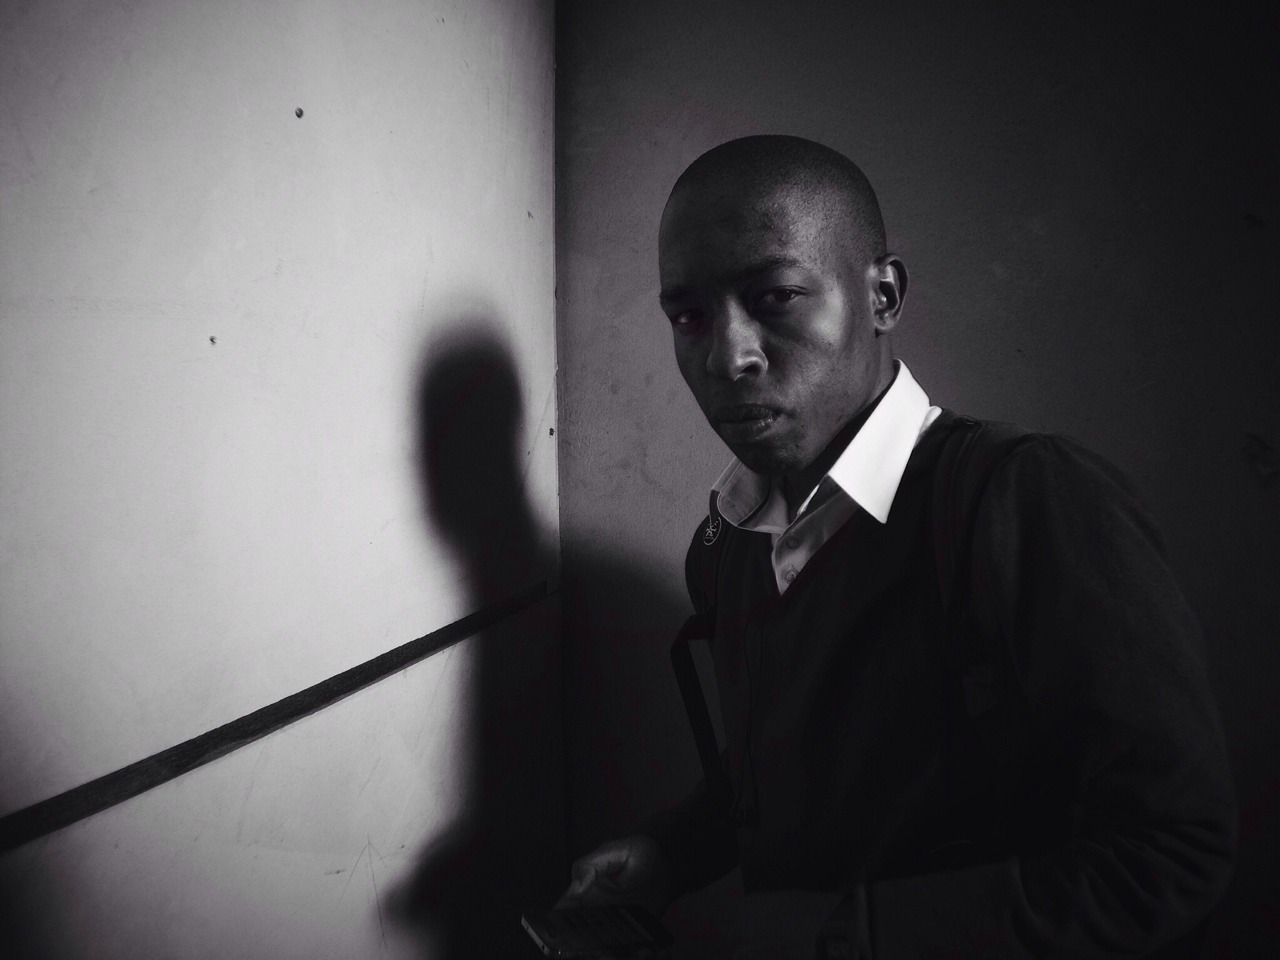 Andile Buka || #portrait #50moreportraits #iPhoneOnly